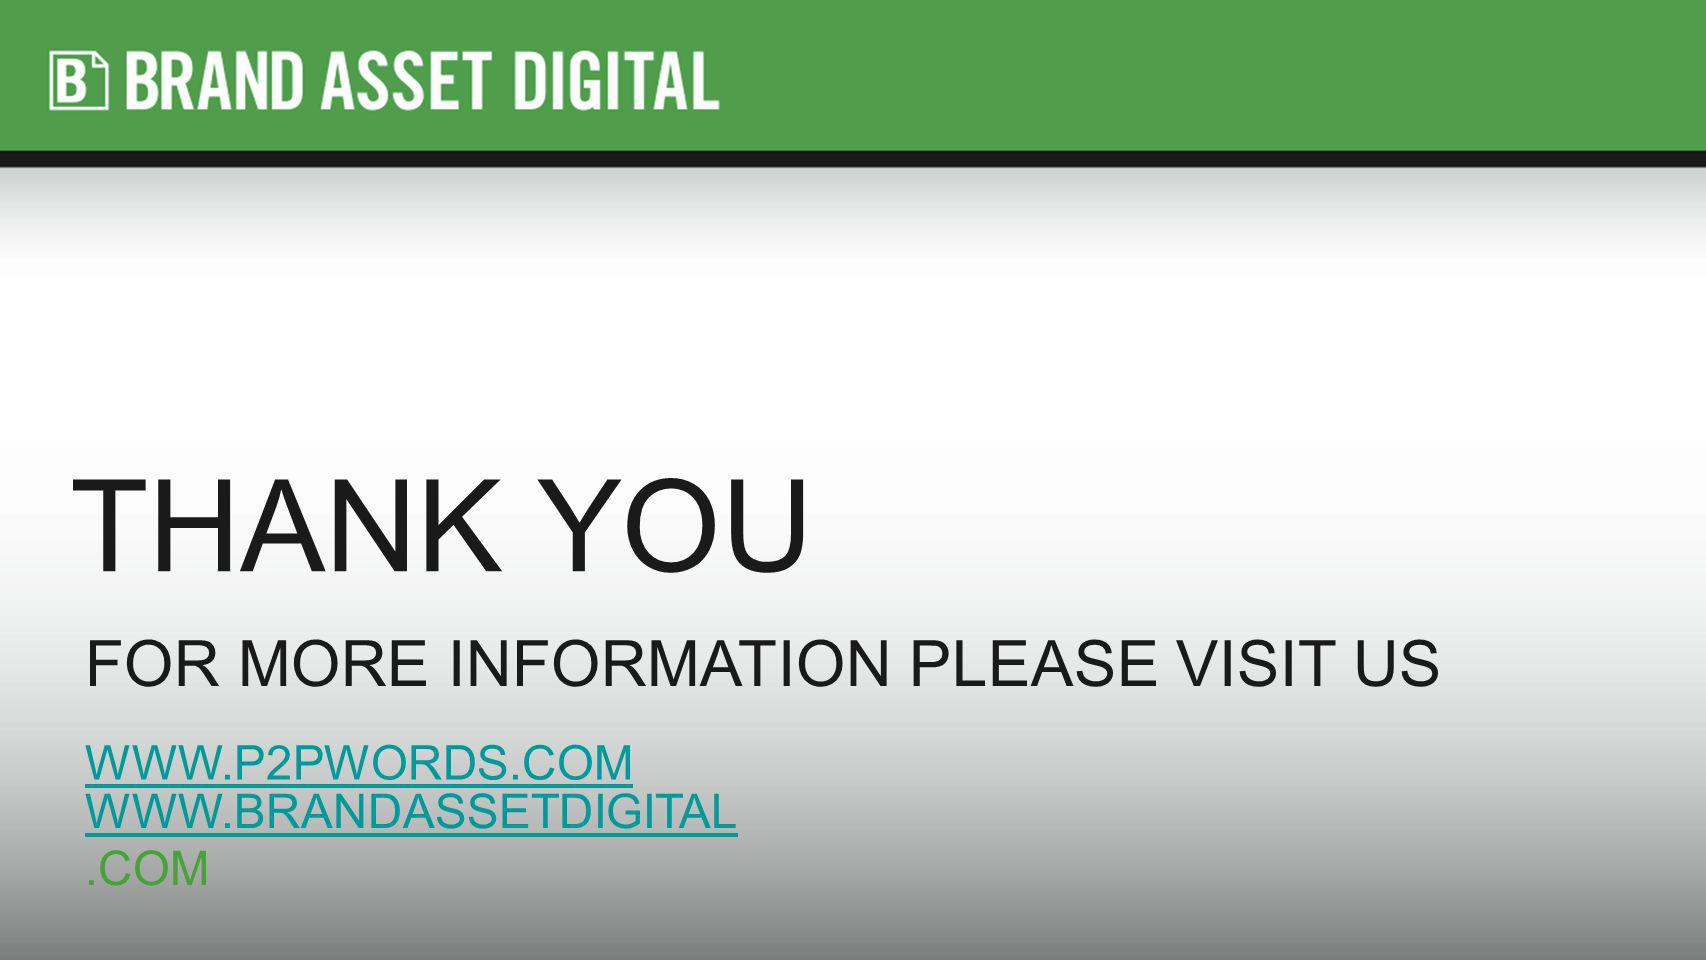 THANK YOU FOR MORE INFORMATION PLEASE VISIT US WWW.P2PWORDS.COM WWW.BRANDASSETDIGITAL WWW.BRANDASSETDIGITAL.COM